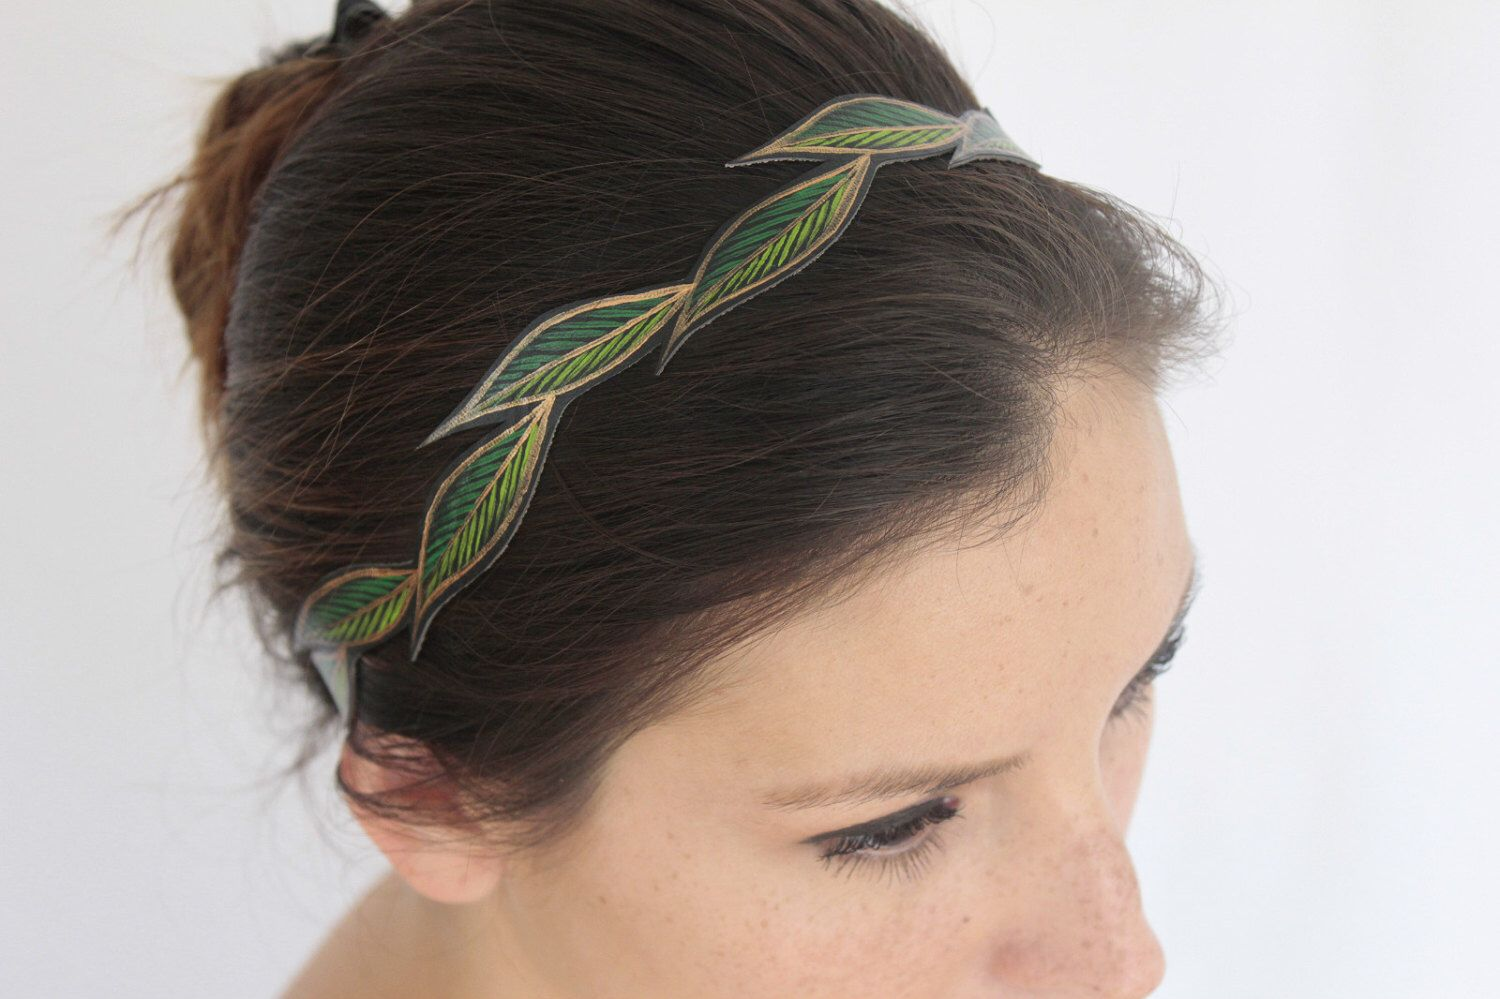 Women's Headband Fall, Cascading Green Leaves, Faux Leather, Handmade & Painted, Vegan Boho Headband, Gifts for Her by AshleyAnnBennett on Etsy https://www.etsy.com/listing/165458964/womens-headband-fall-cascading-green